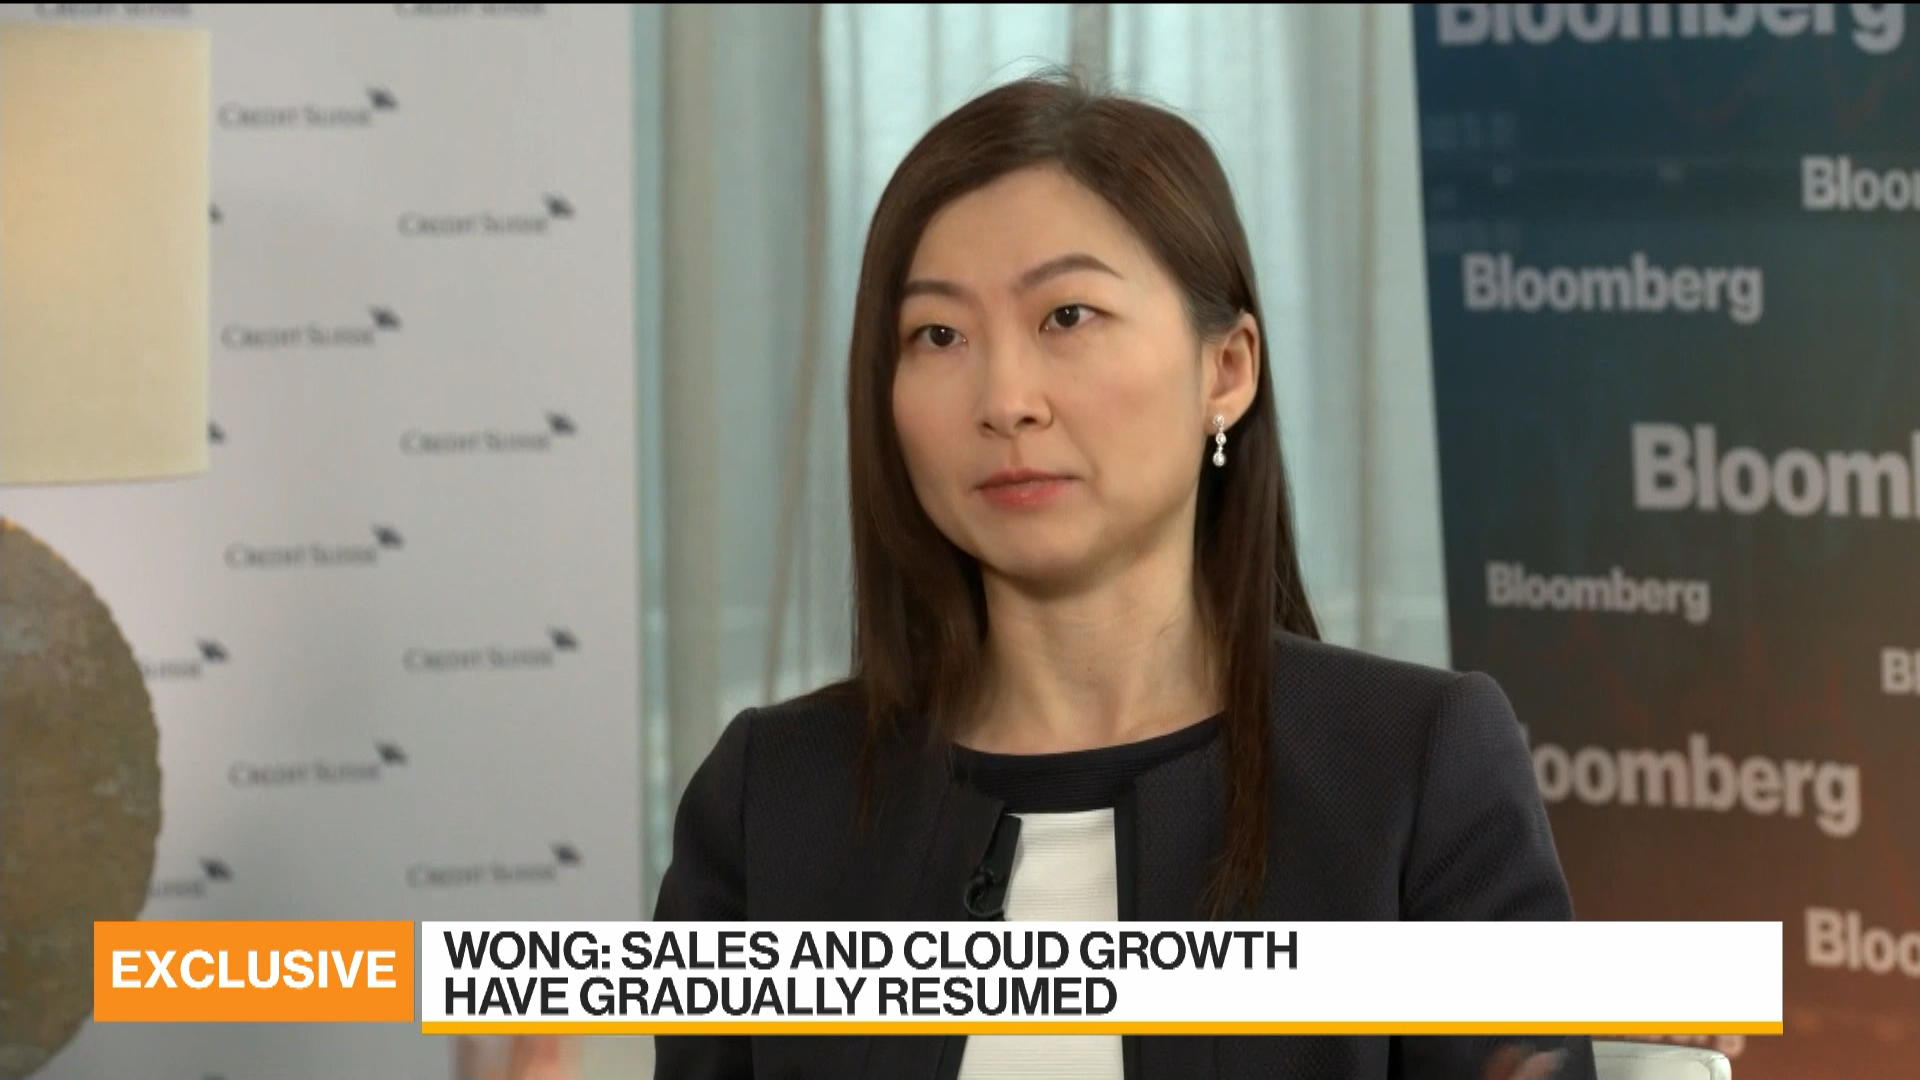 Credit Suisse's Wong on China's Cloud Computing, 5G, Chips